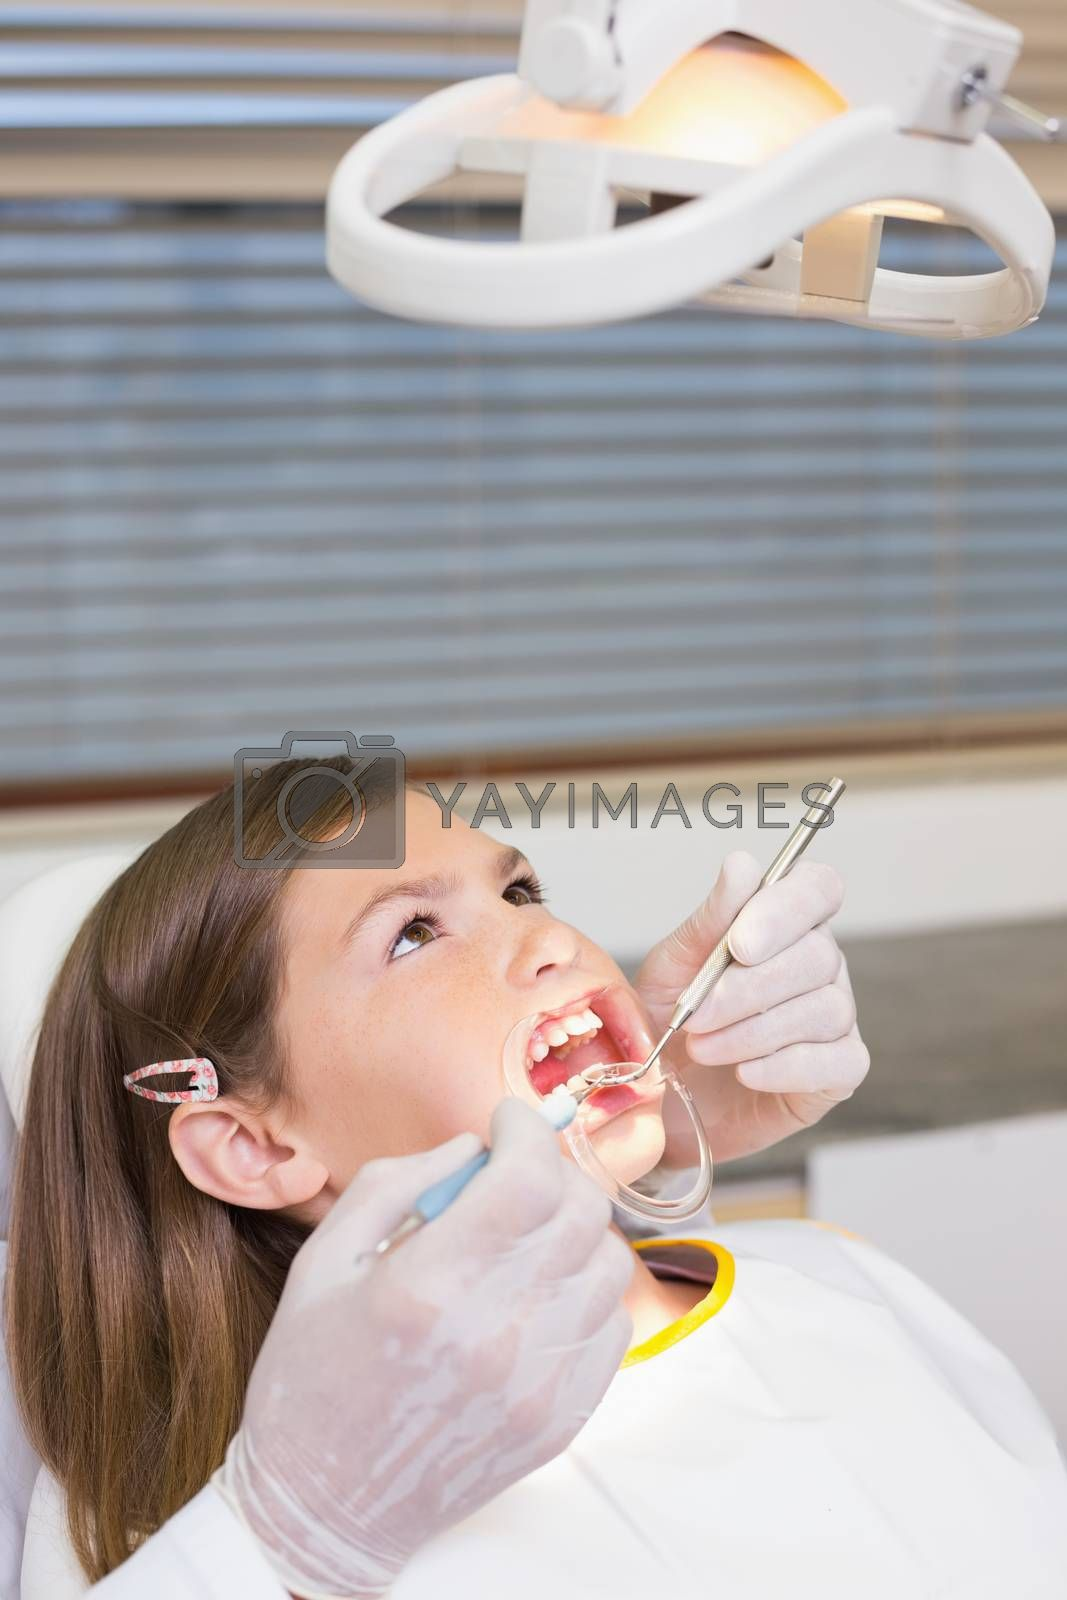 Dentist using mouth retractor on little girl at the dental clinic